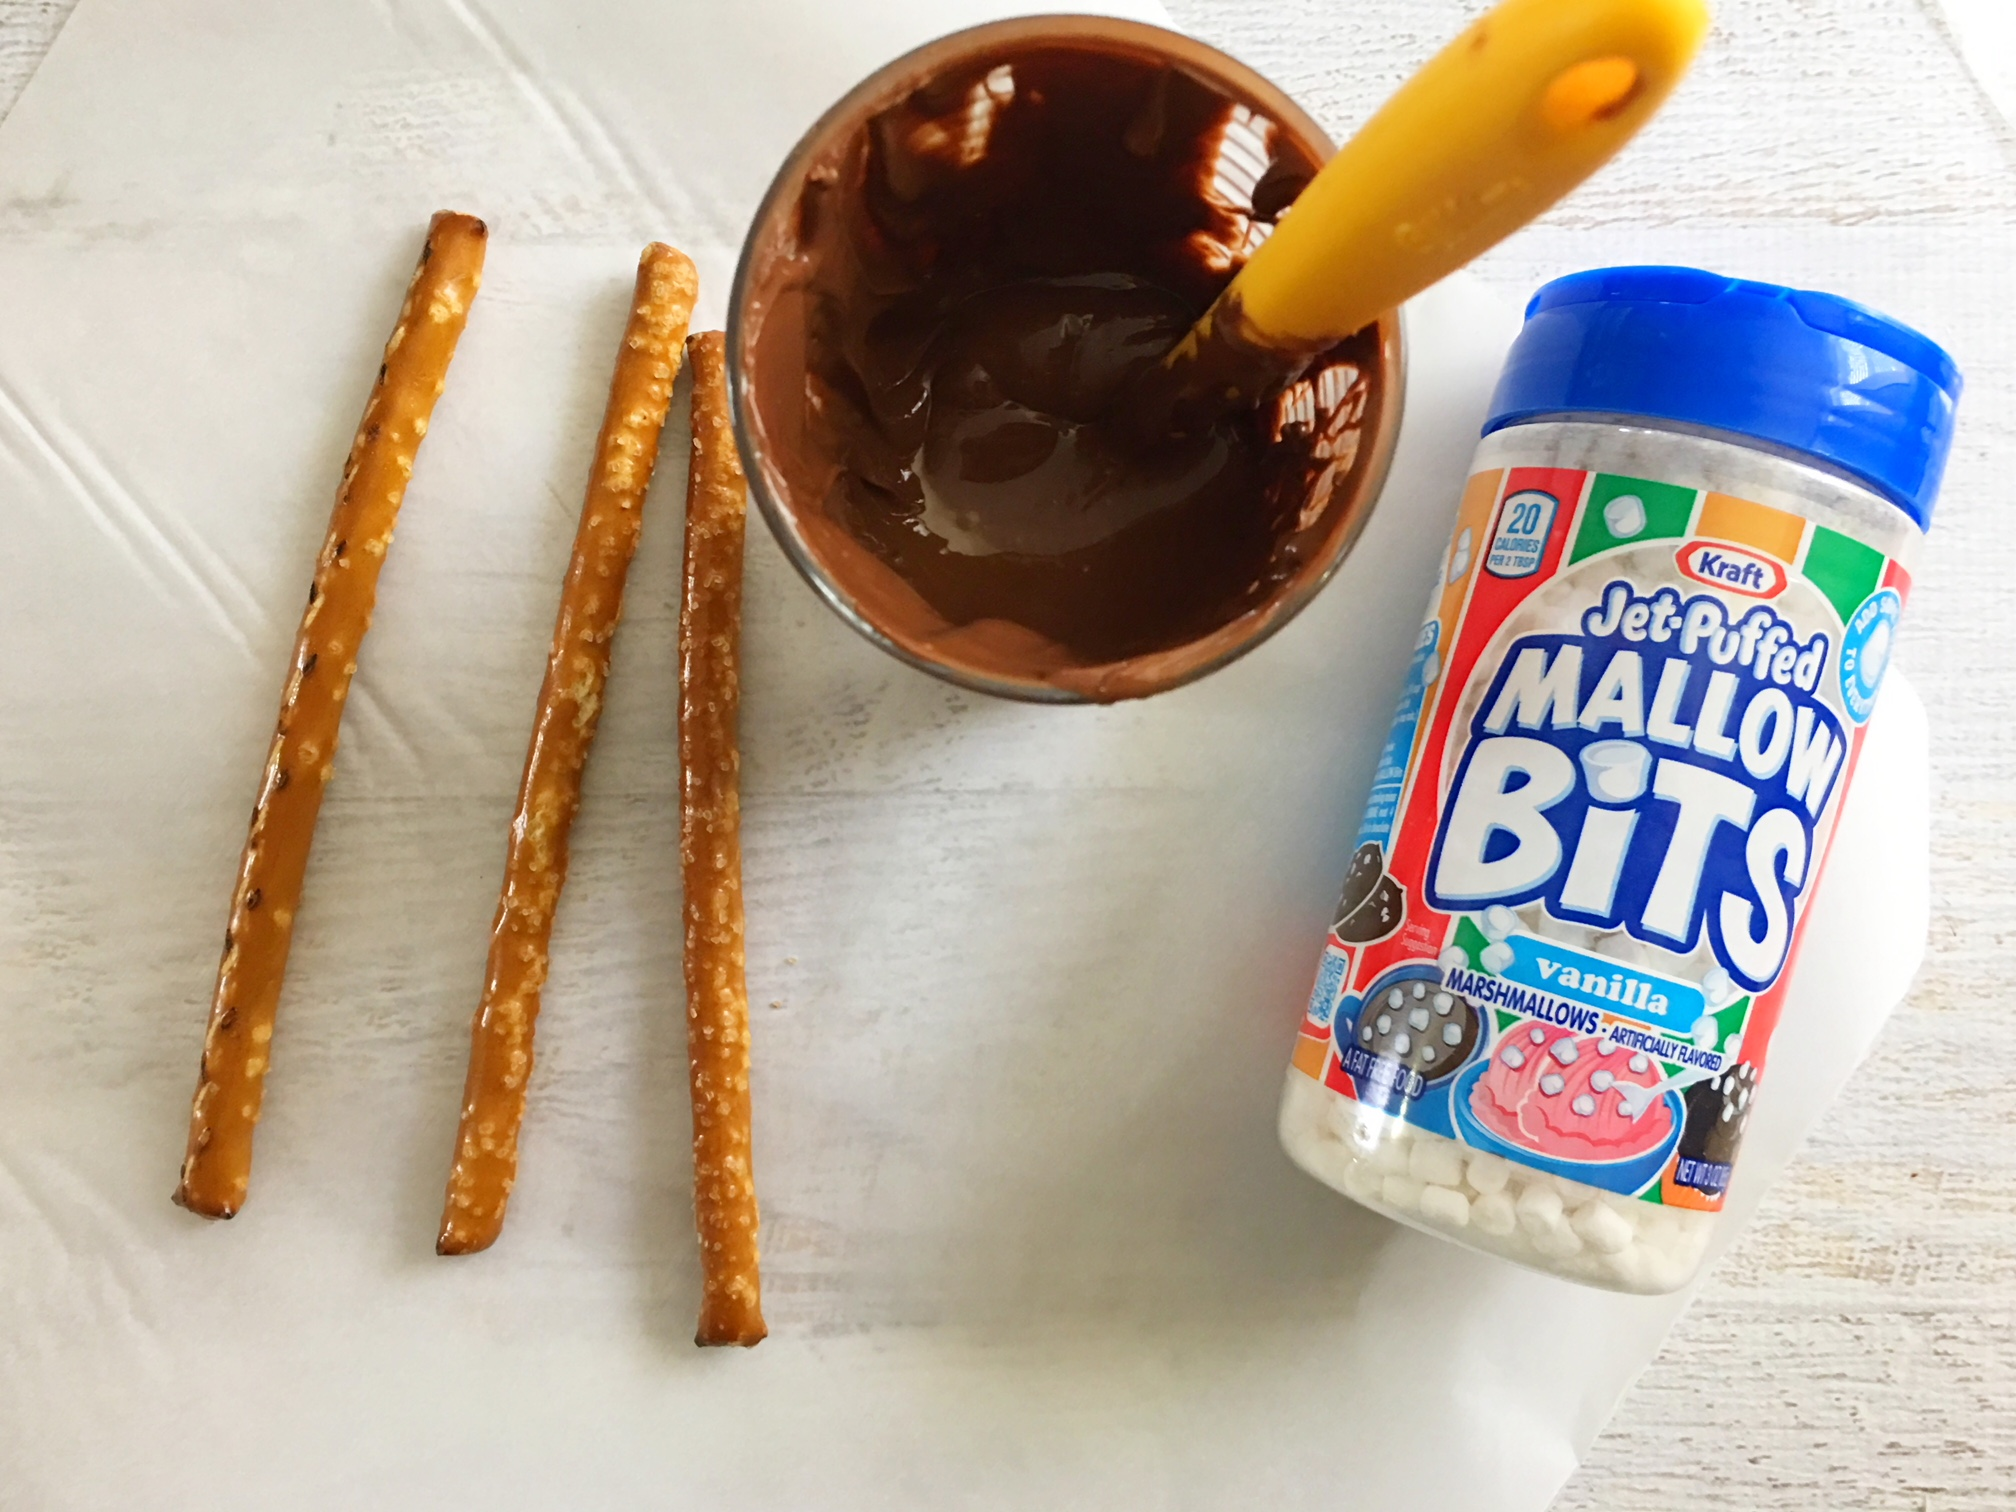 If you're looking for a fun wintery treat, try these Hot Chocolate Pretzel Rods! They are super easy to make and will satisfy your salty and sweet cravings!